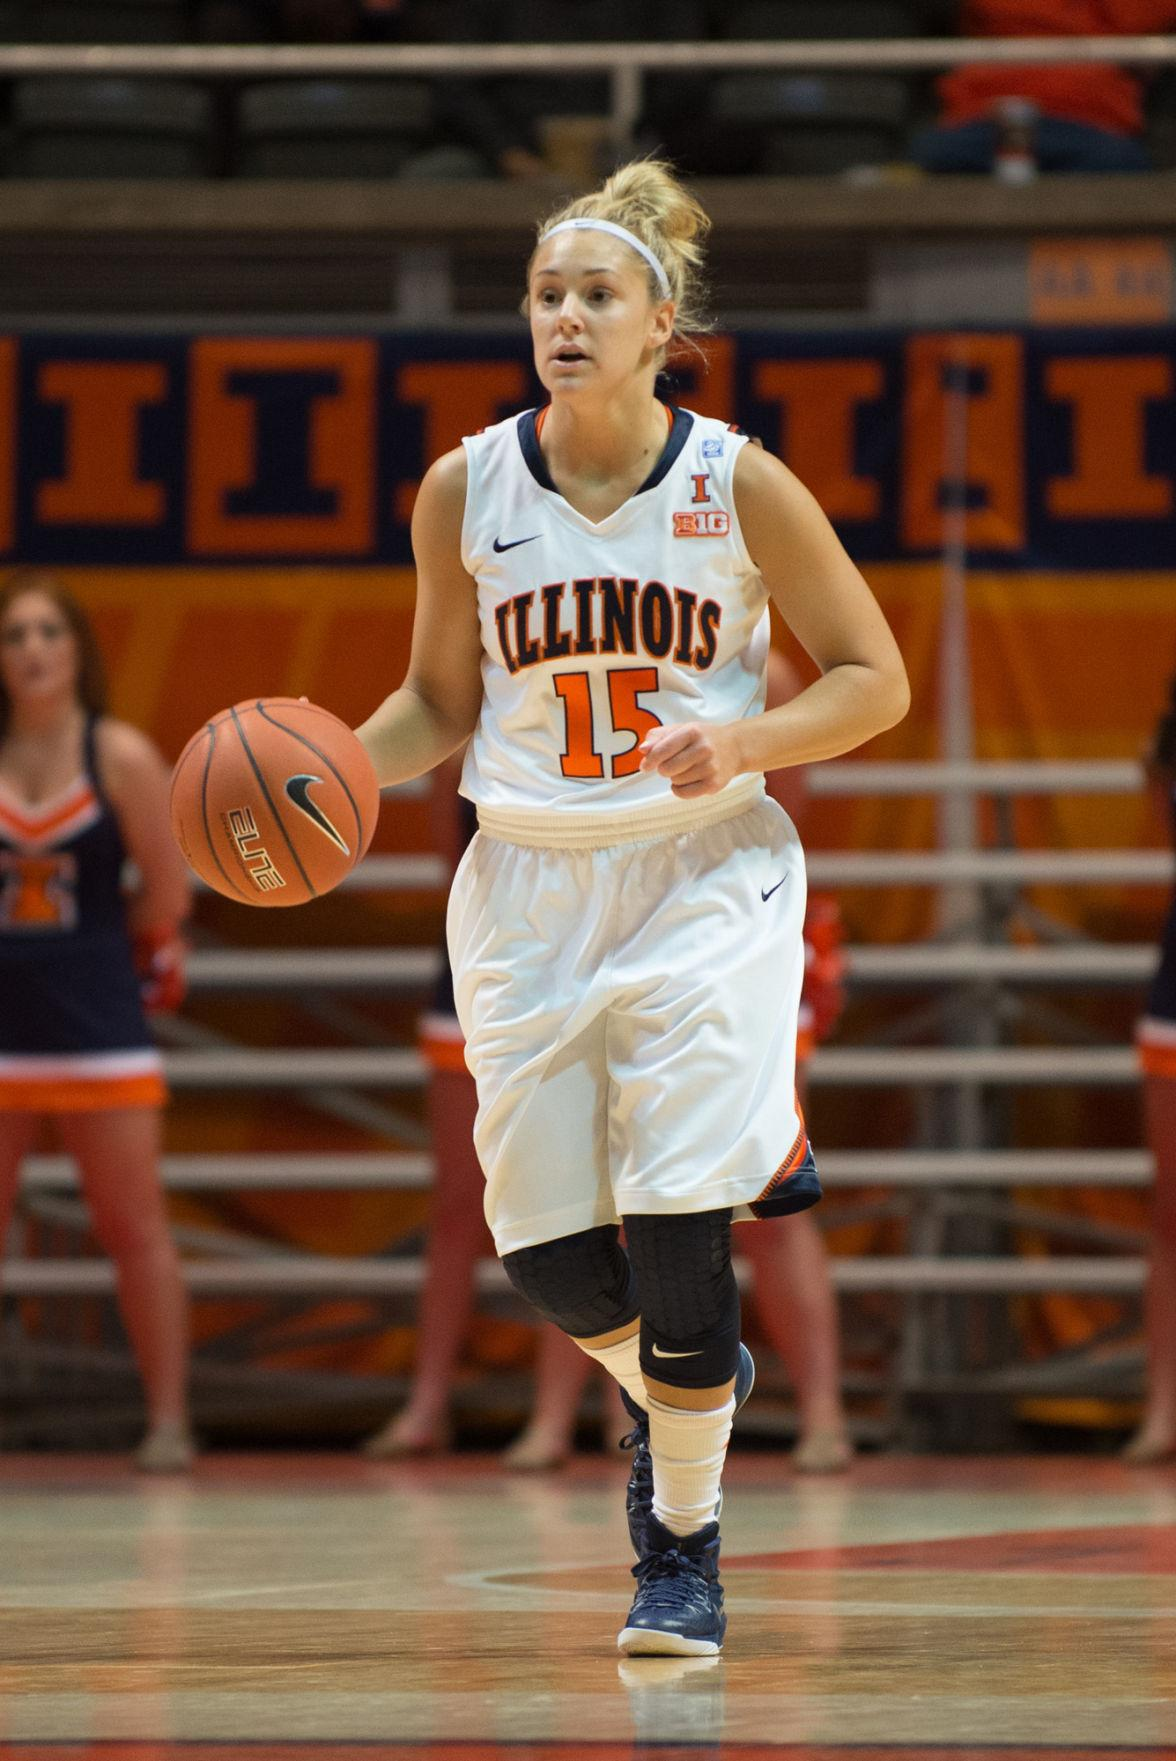 Illinois' Kyley Simmons dribbles the ball down the court during the game against IPFW on Friday. The Illini won 70-63.